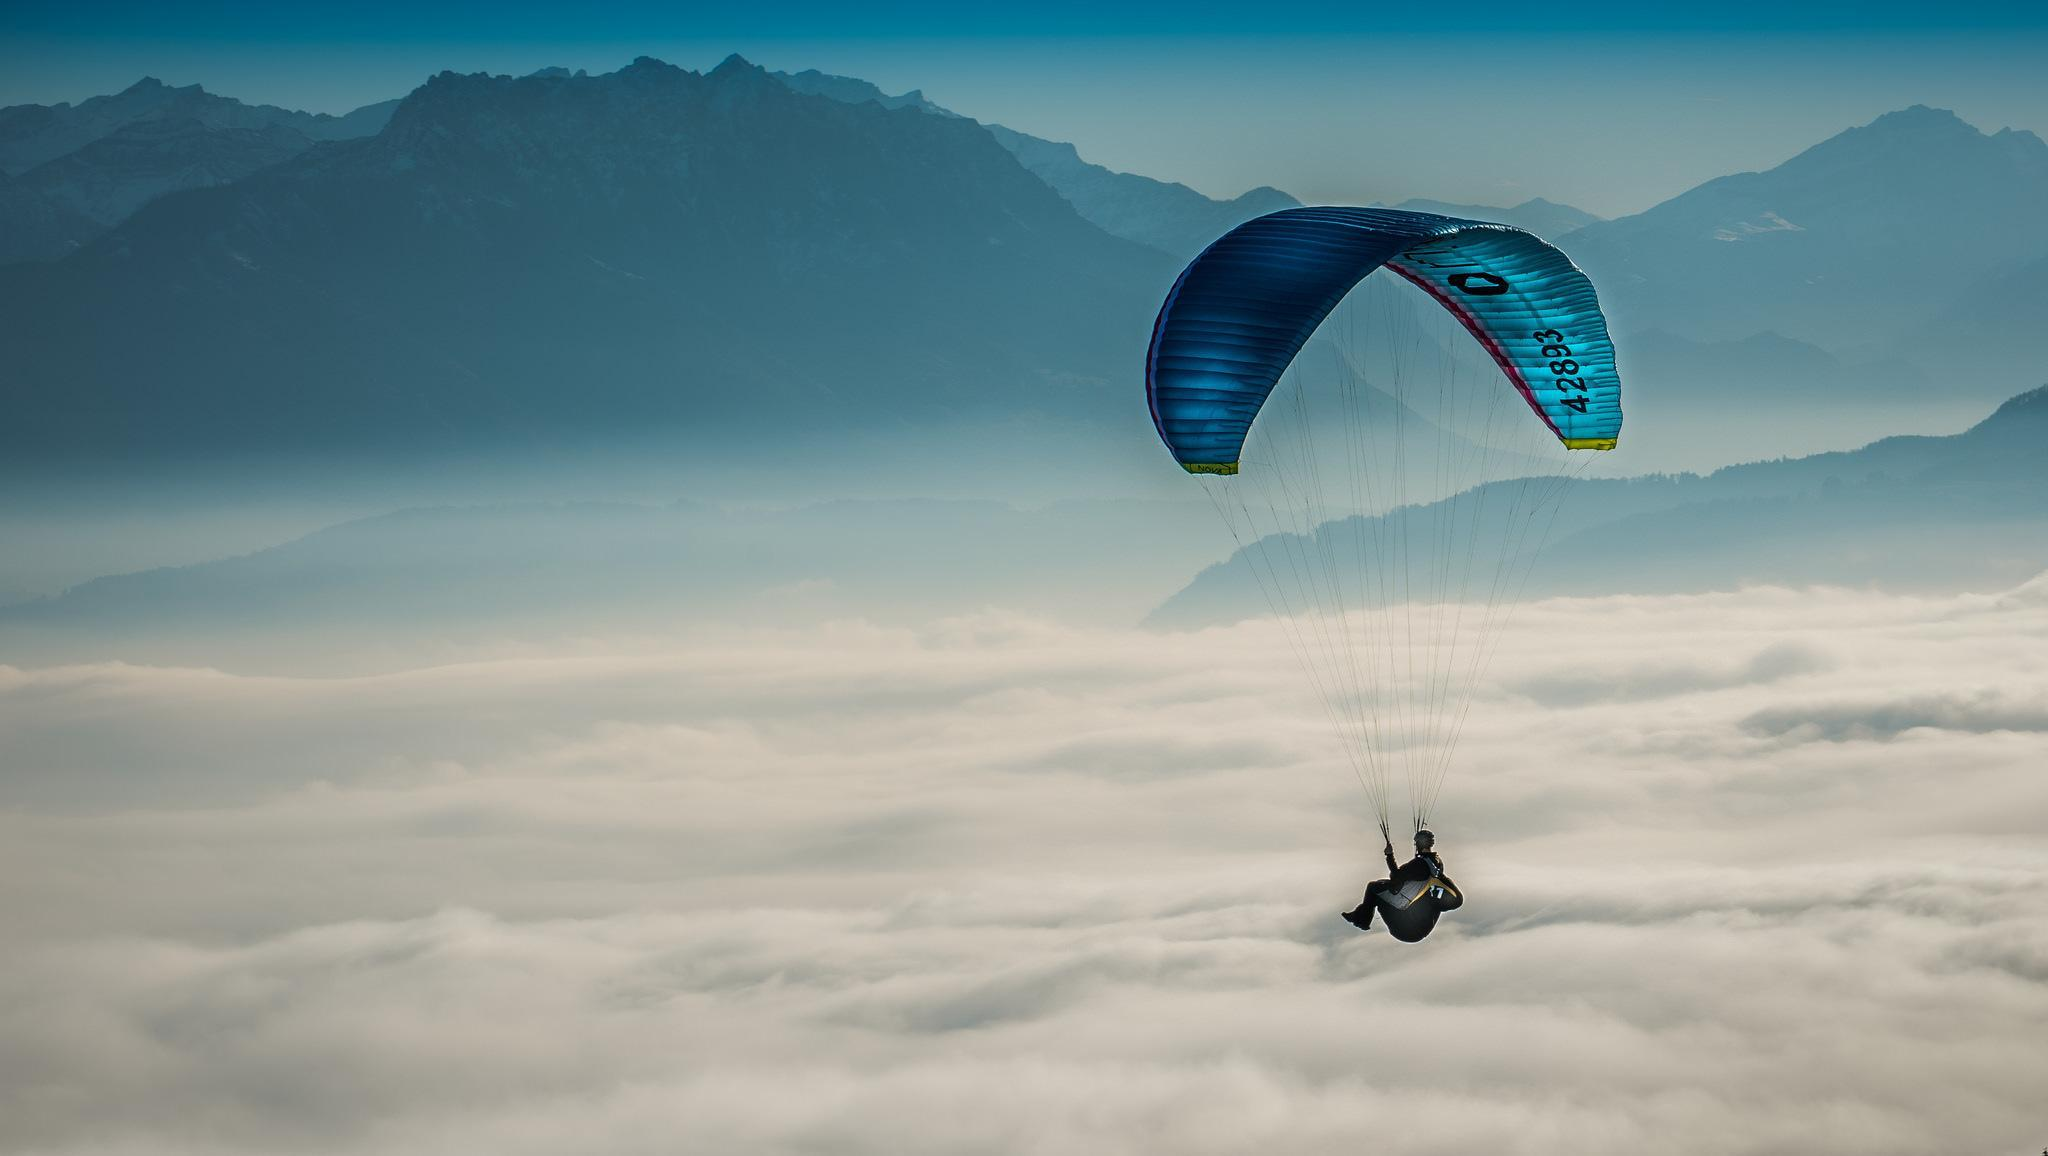 Paragliding High Quality Wallpapers